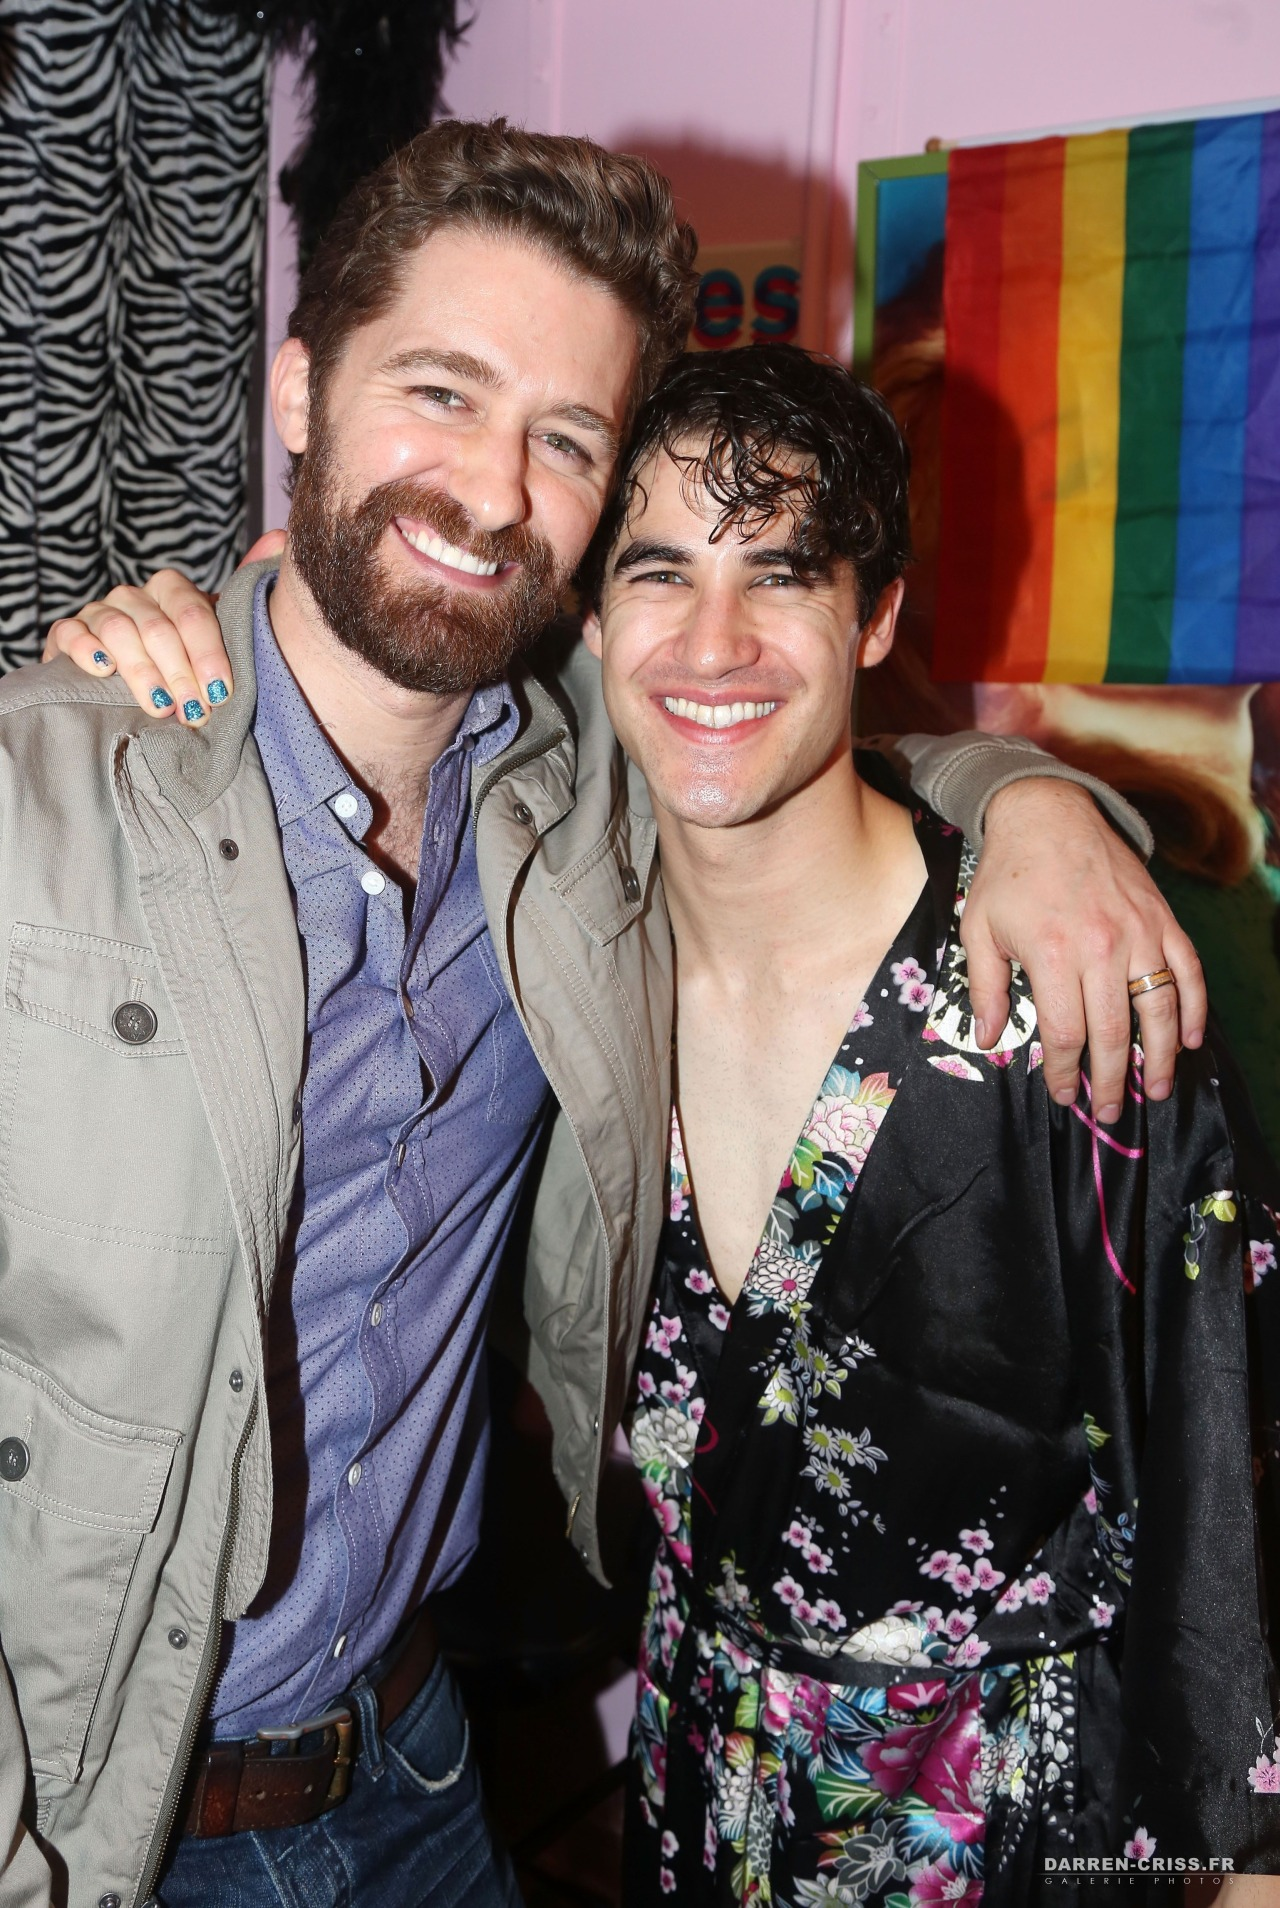 AmyHeckerling - Who saw Darren in Hedwig and the Angry Inch on Broadway? Tumblr_nqpgot07Yr1qayexuo6_1280